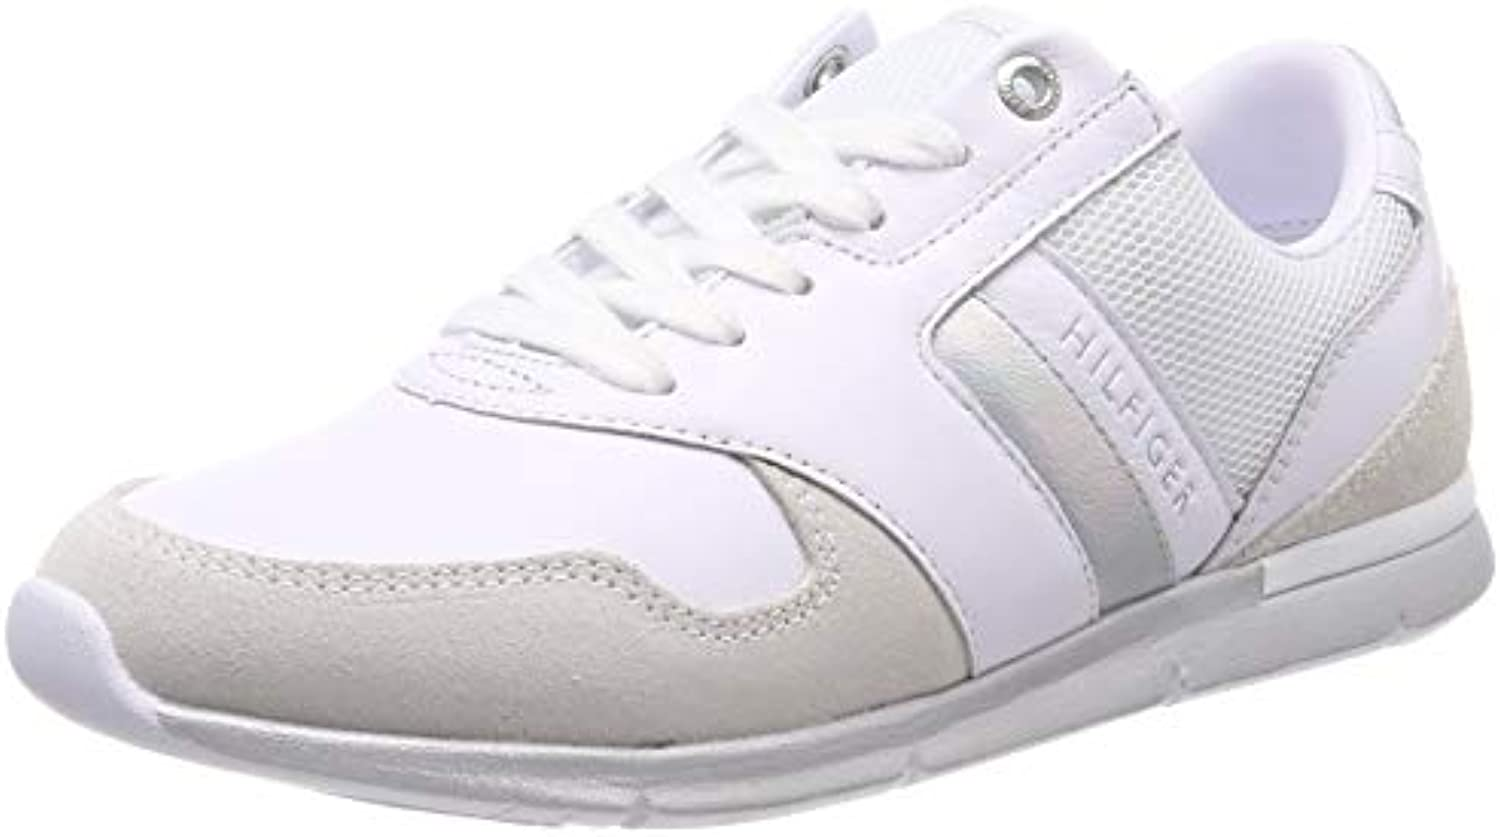 Tommy Tommy Tommy Hilfiger Iridescent Light scarpe da ginnastica, Scarpe da Ginnastica Basse Donna | Queensland  0f9b44